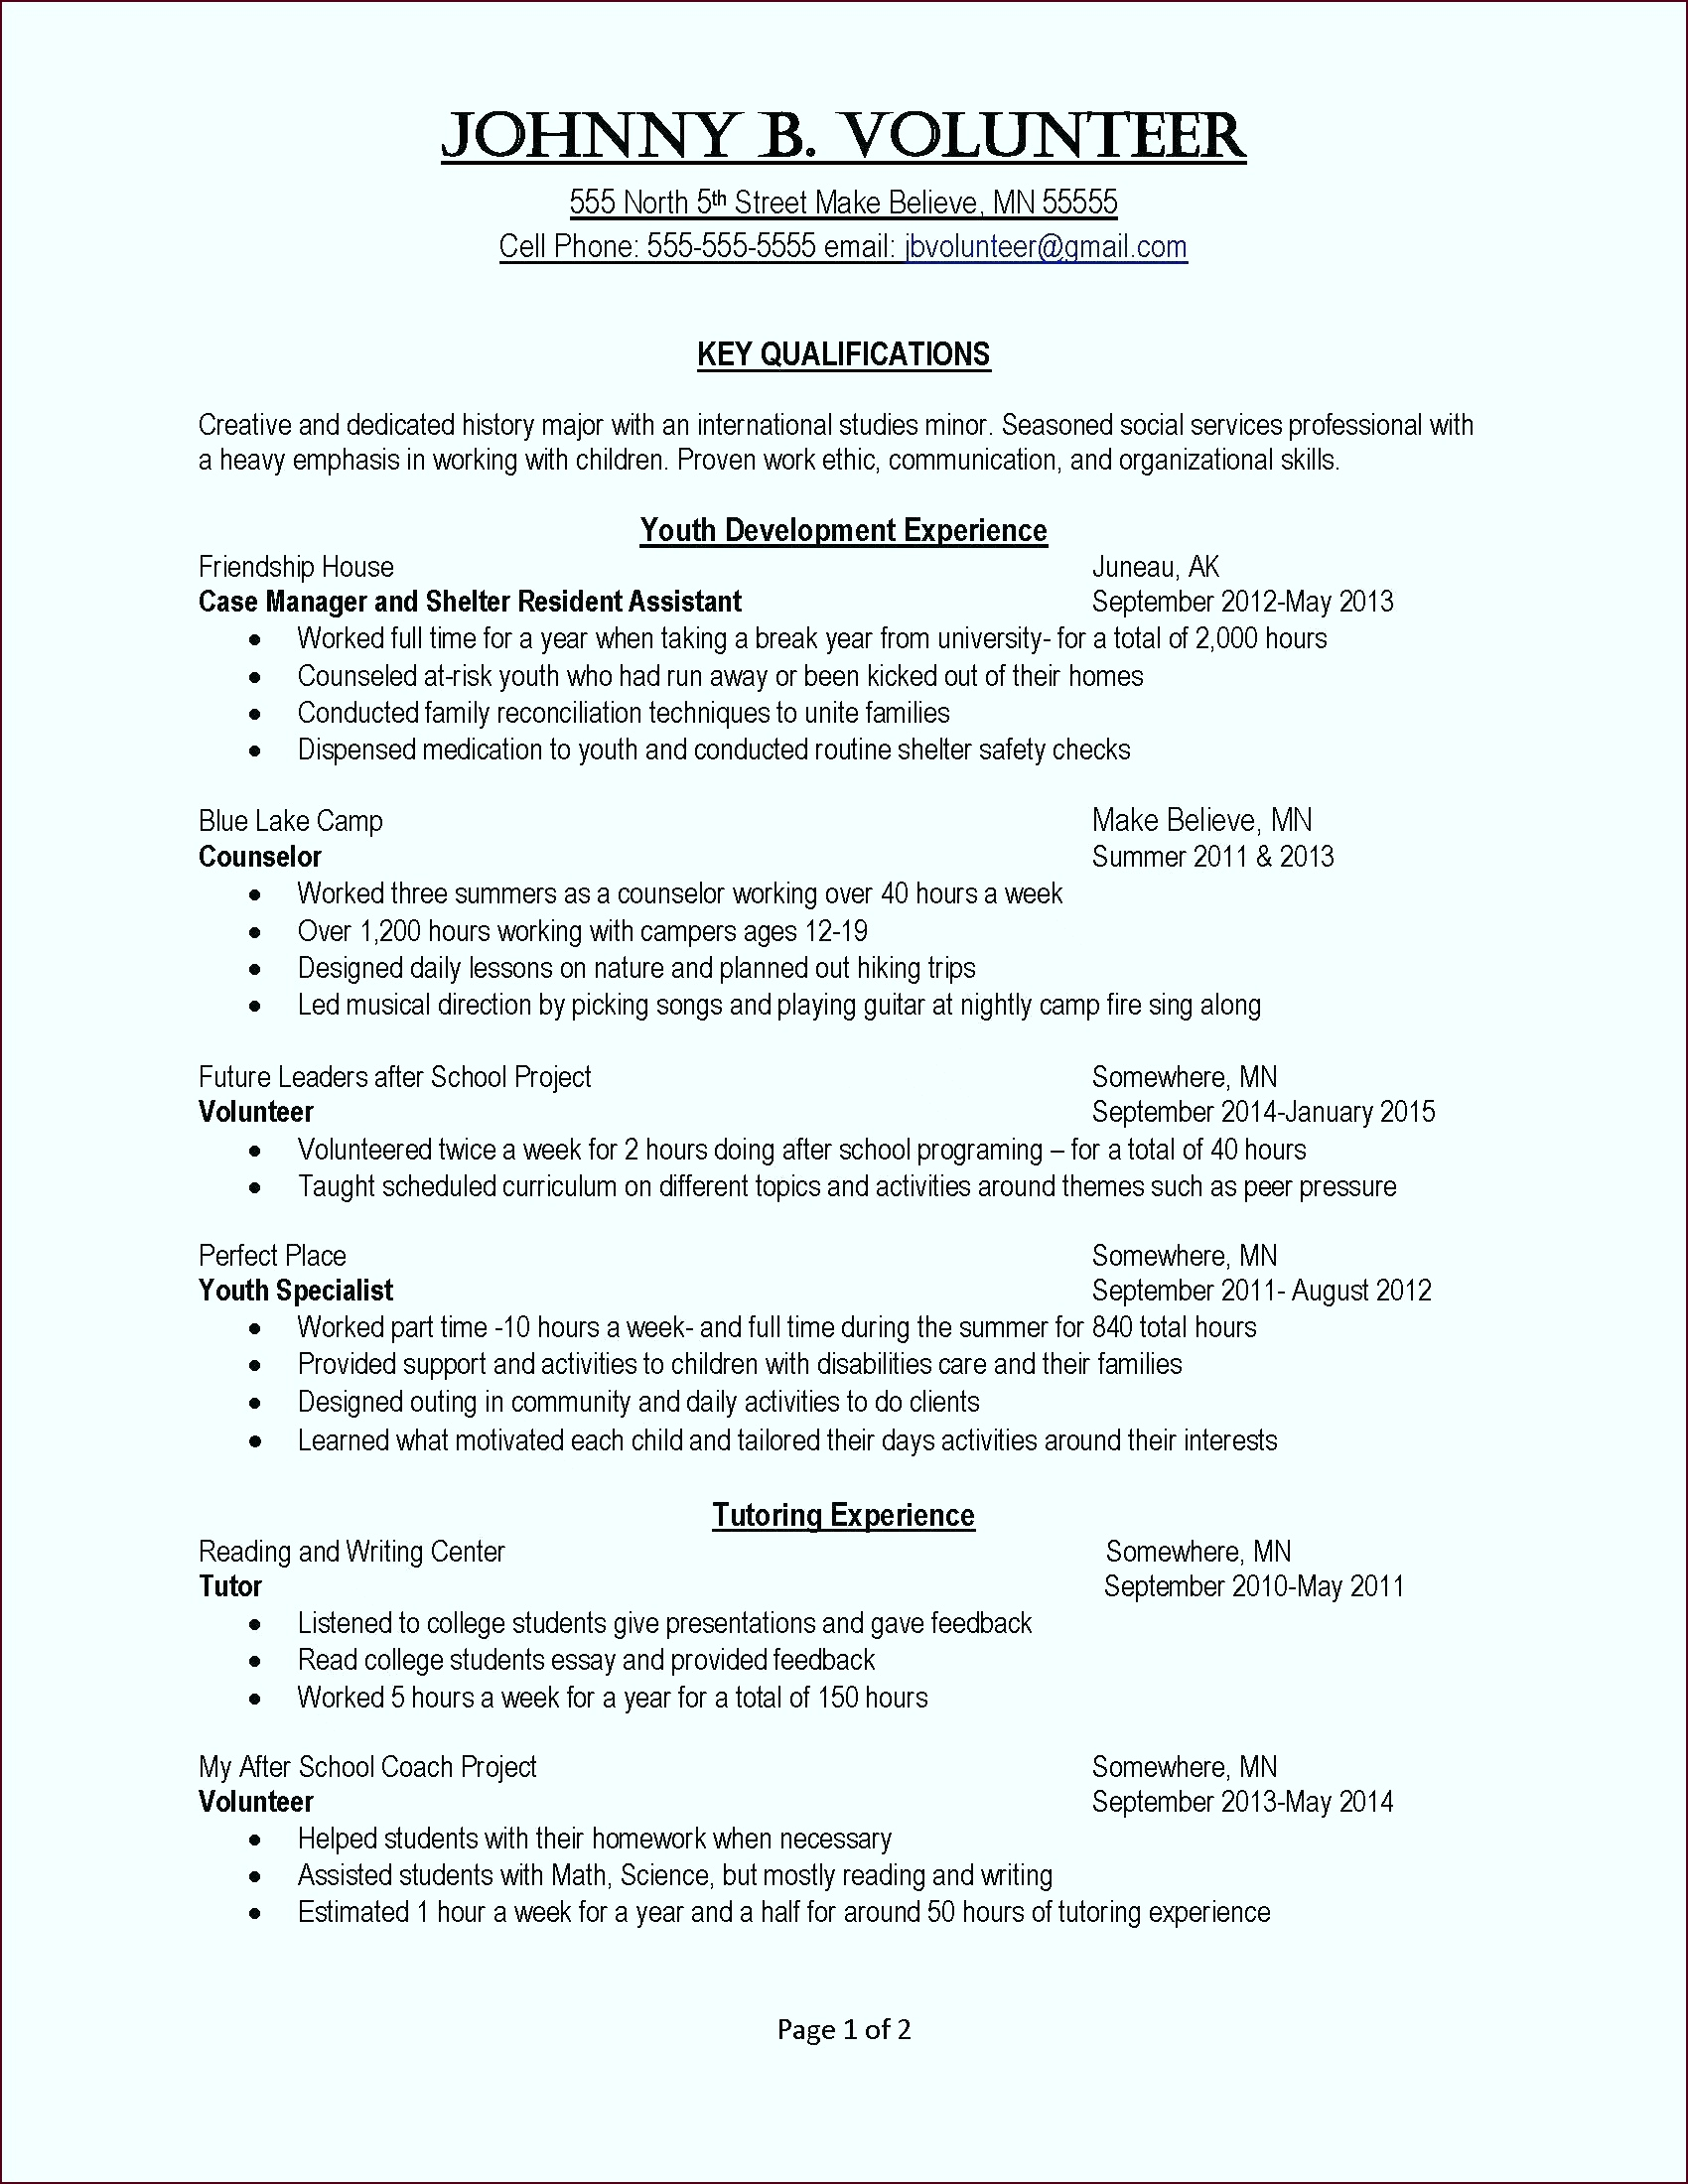 Email Resume Template Elegant Email Resume Cover Letter Samples tmity